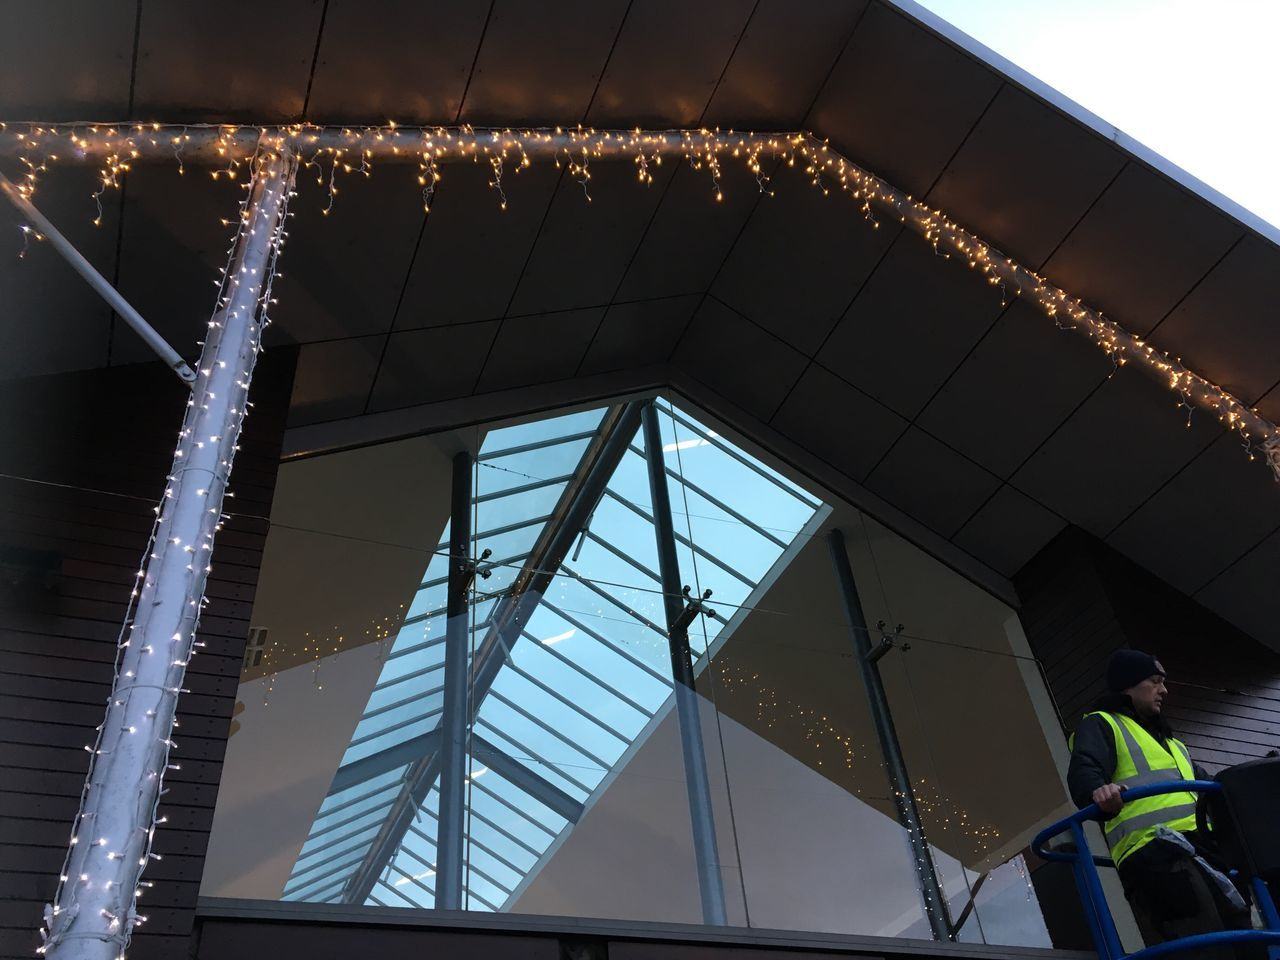 Real People One Person Low Angle View Sky Architecture Indoors  Men Day Working Away for MK Illuminations Icicles Warm White Pure White Atlantic Village Ready For Home.